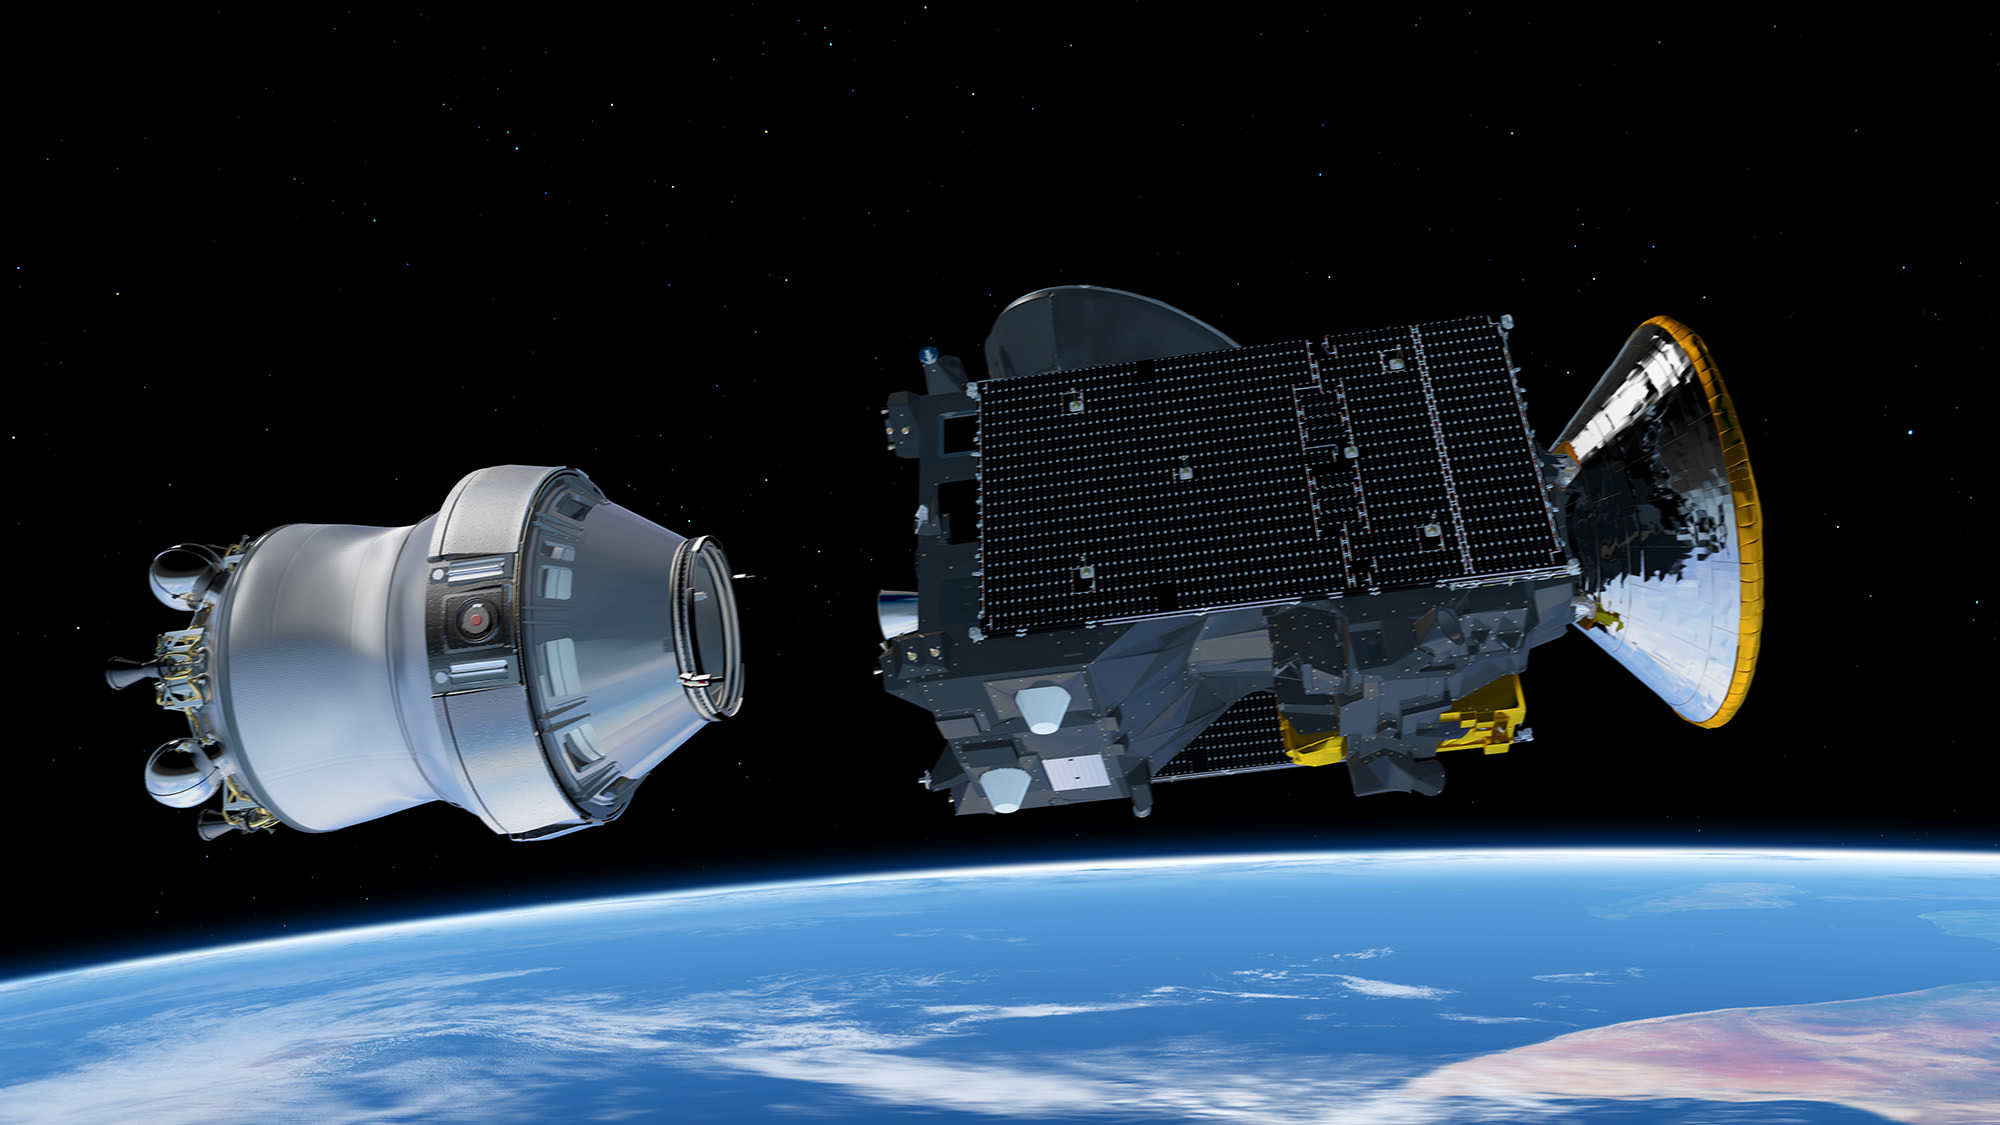 Artists concept of ExoMars spacecraft separation from Breeze fourth stage. Credit: ESA